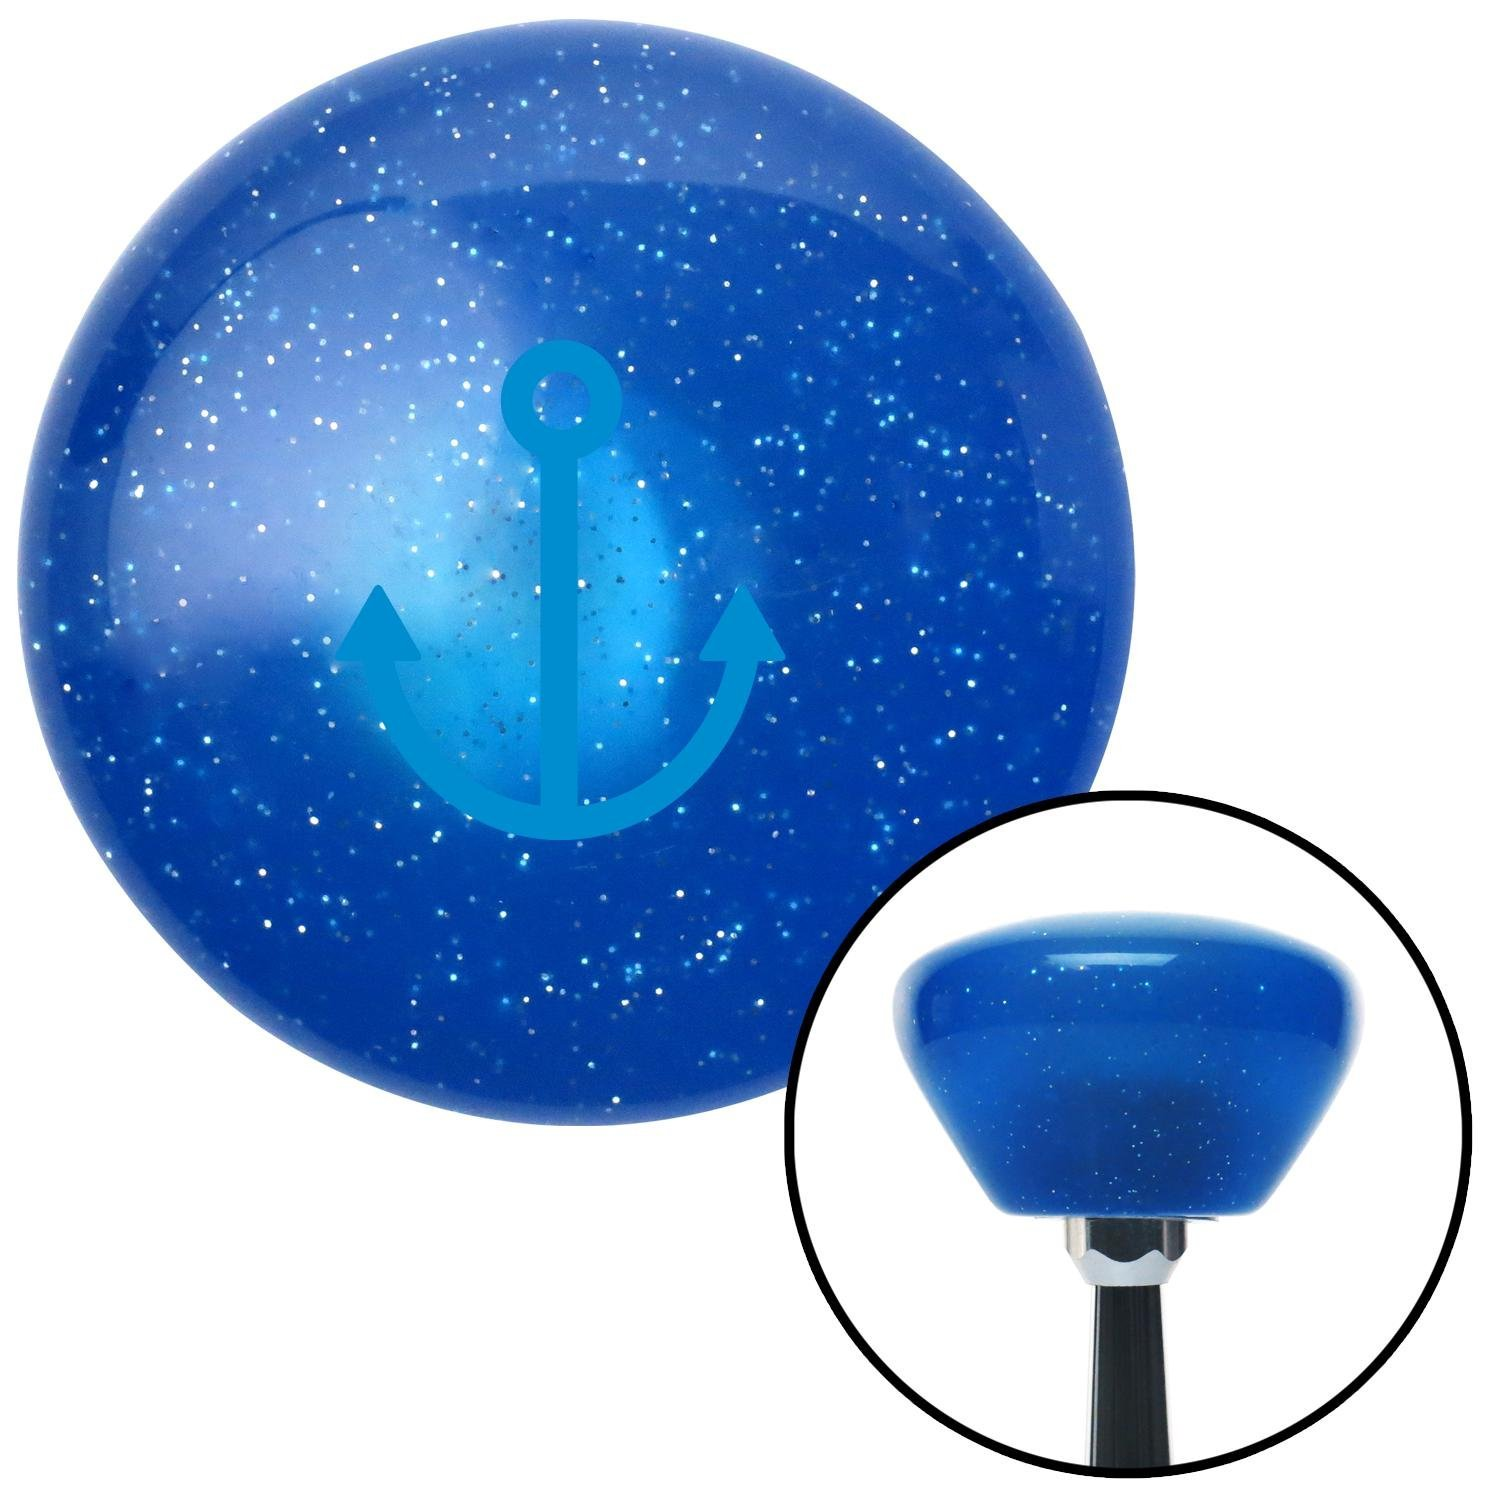 American Shifter 198361 Red Retro Metal Flake Shift Knob with M16 x 1.5 Insert Blue Marine in Canoe